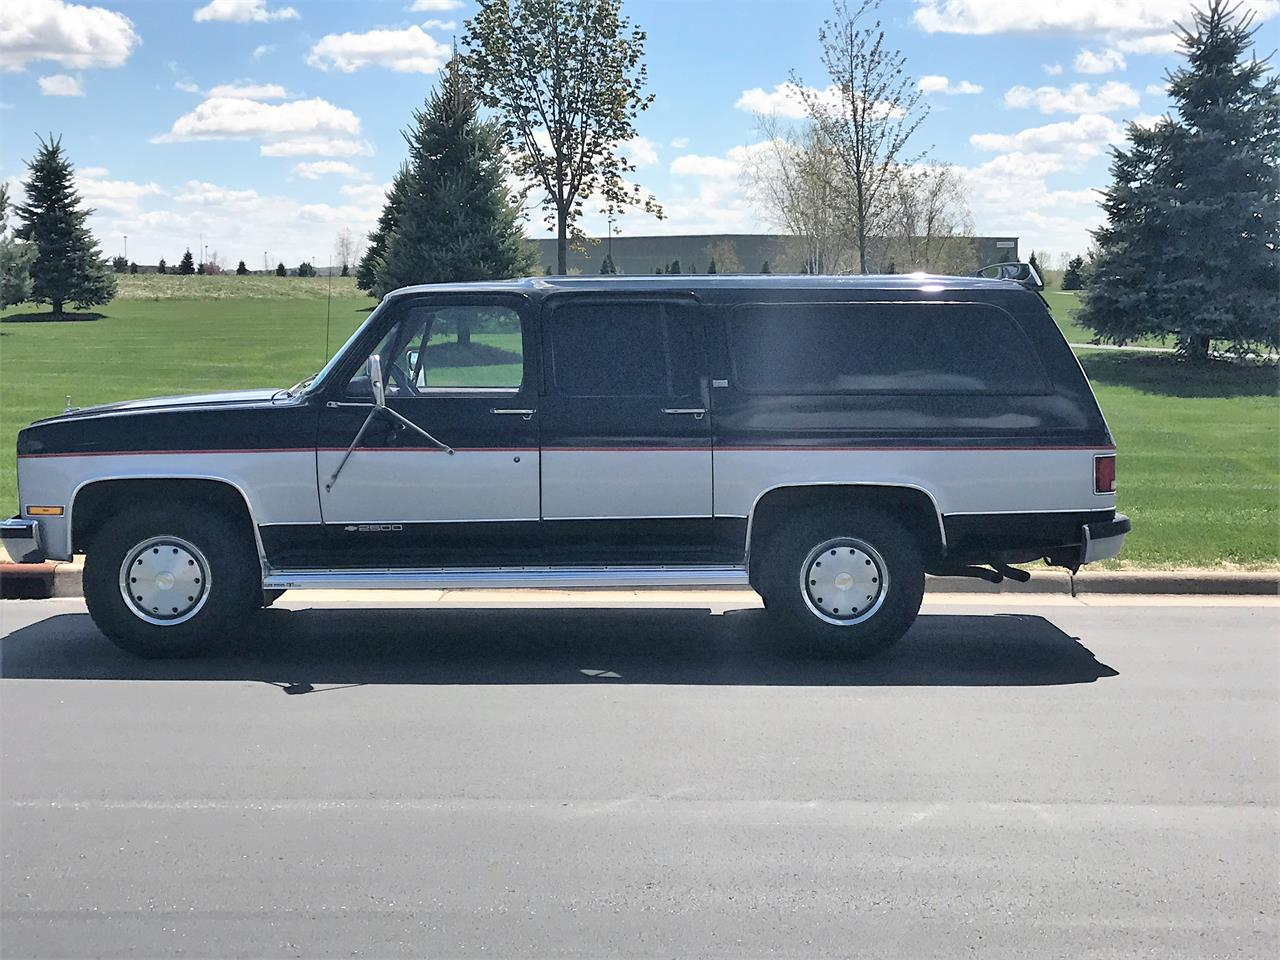 Large Picture of 1989 Chevrolet Suburban located in Wisconsin Offered by a Private Seller - LHN1